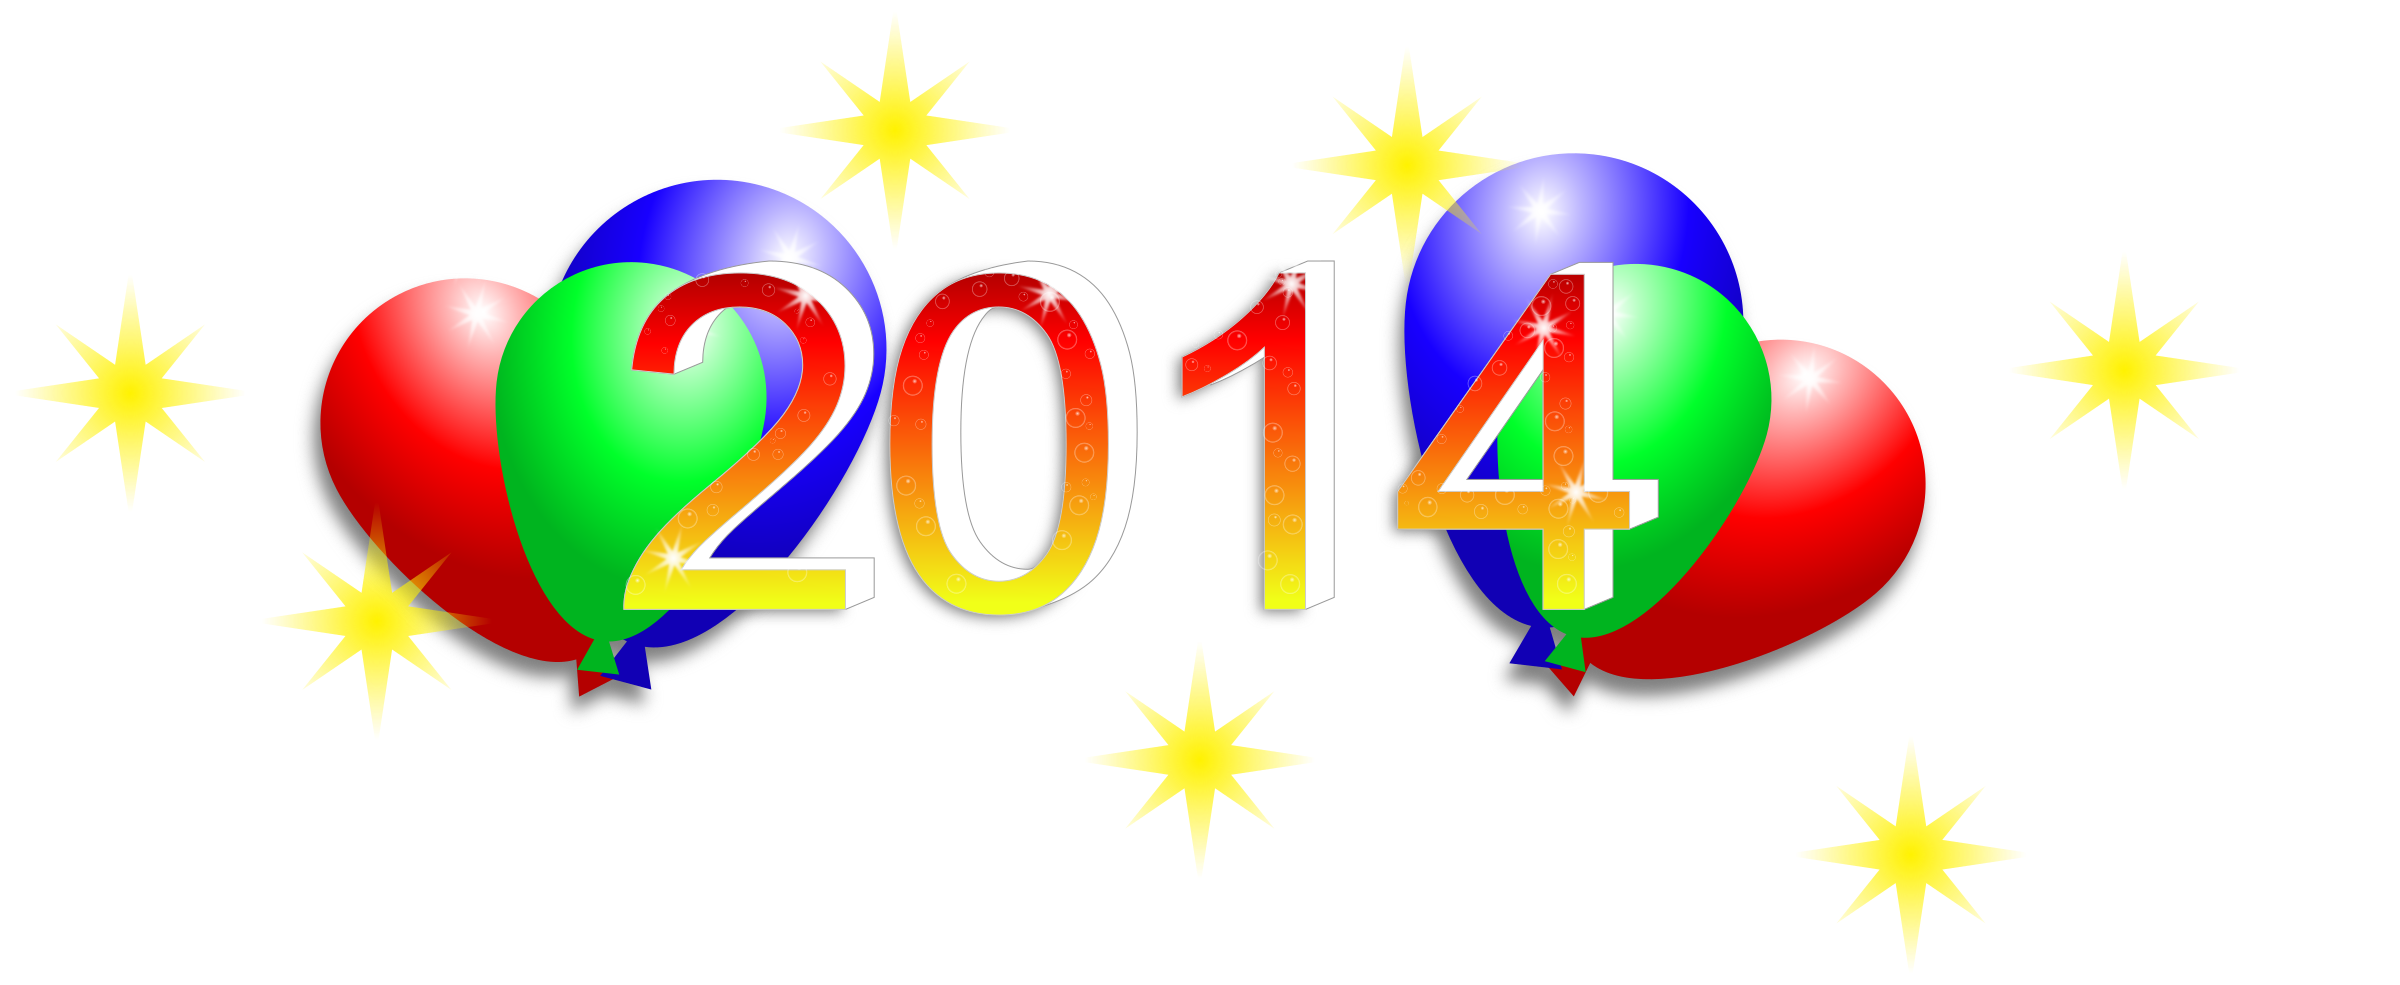 Happy New Year 2014 by cyberscooty